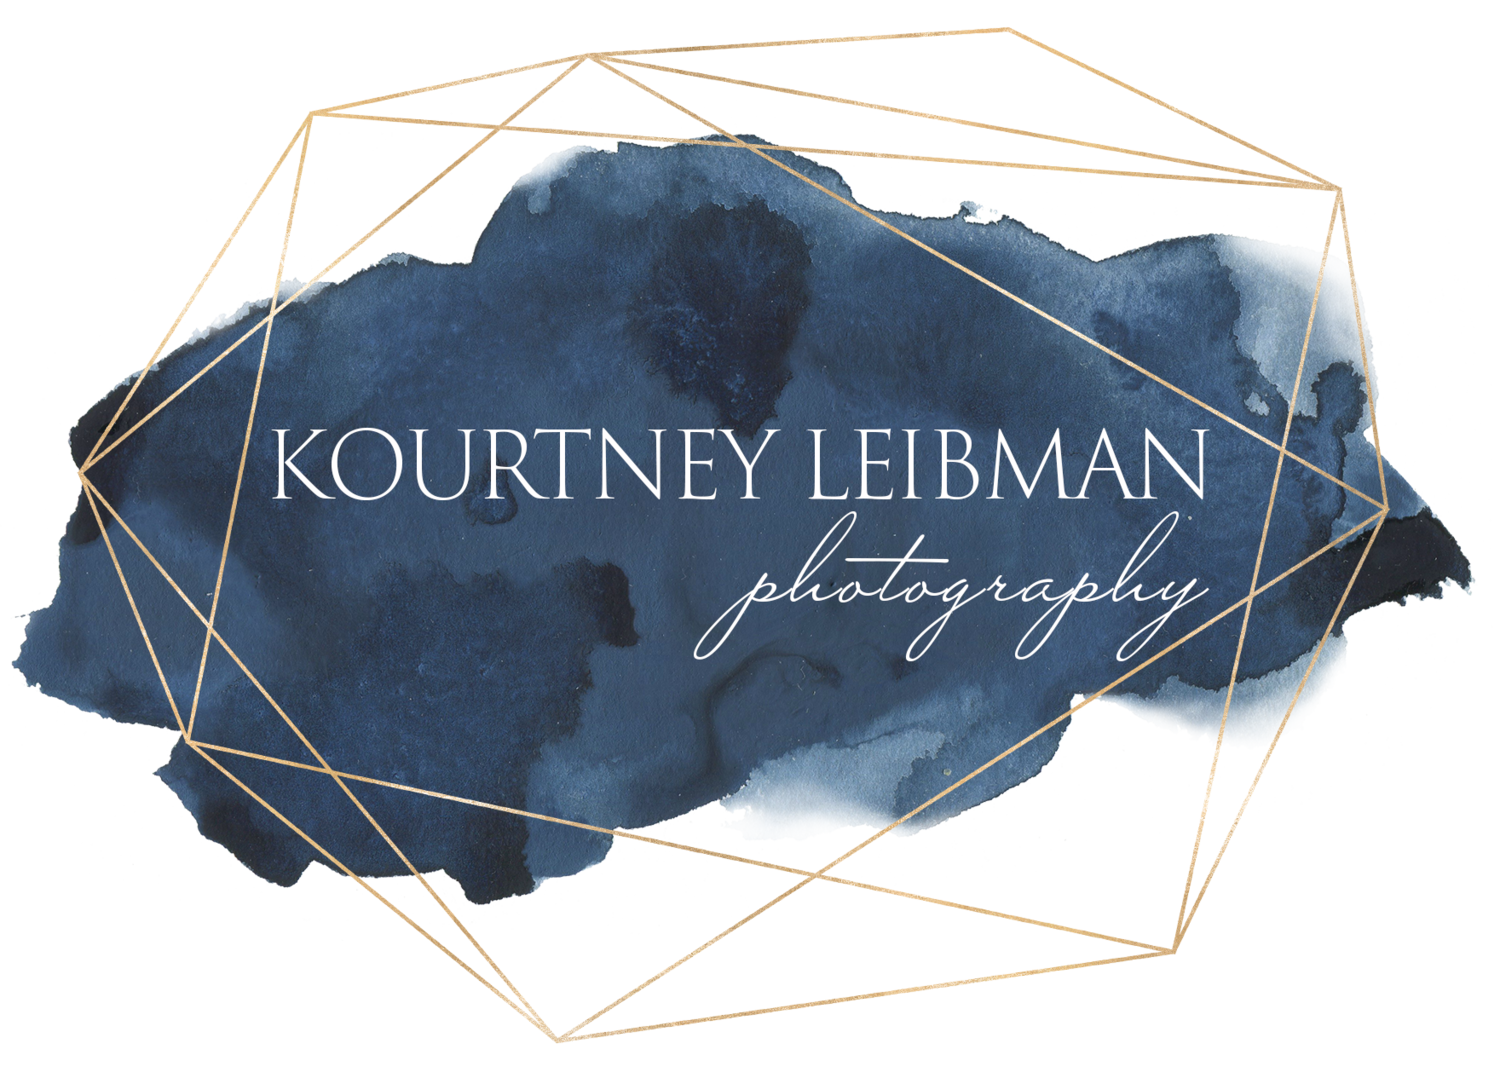 Kourtney Leibman Photography